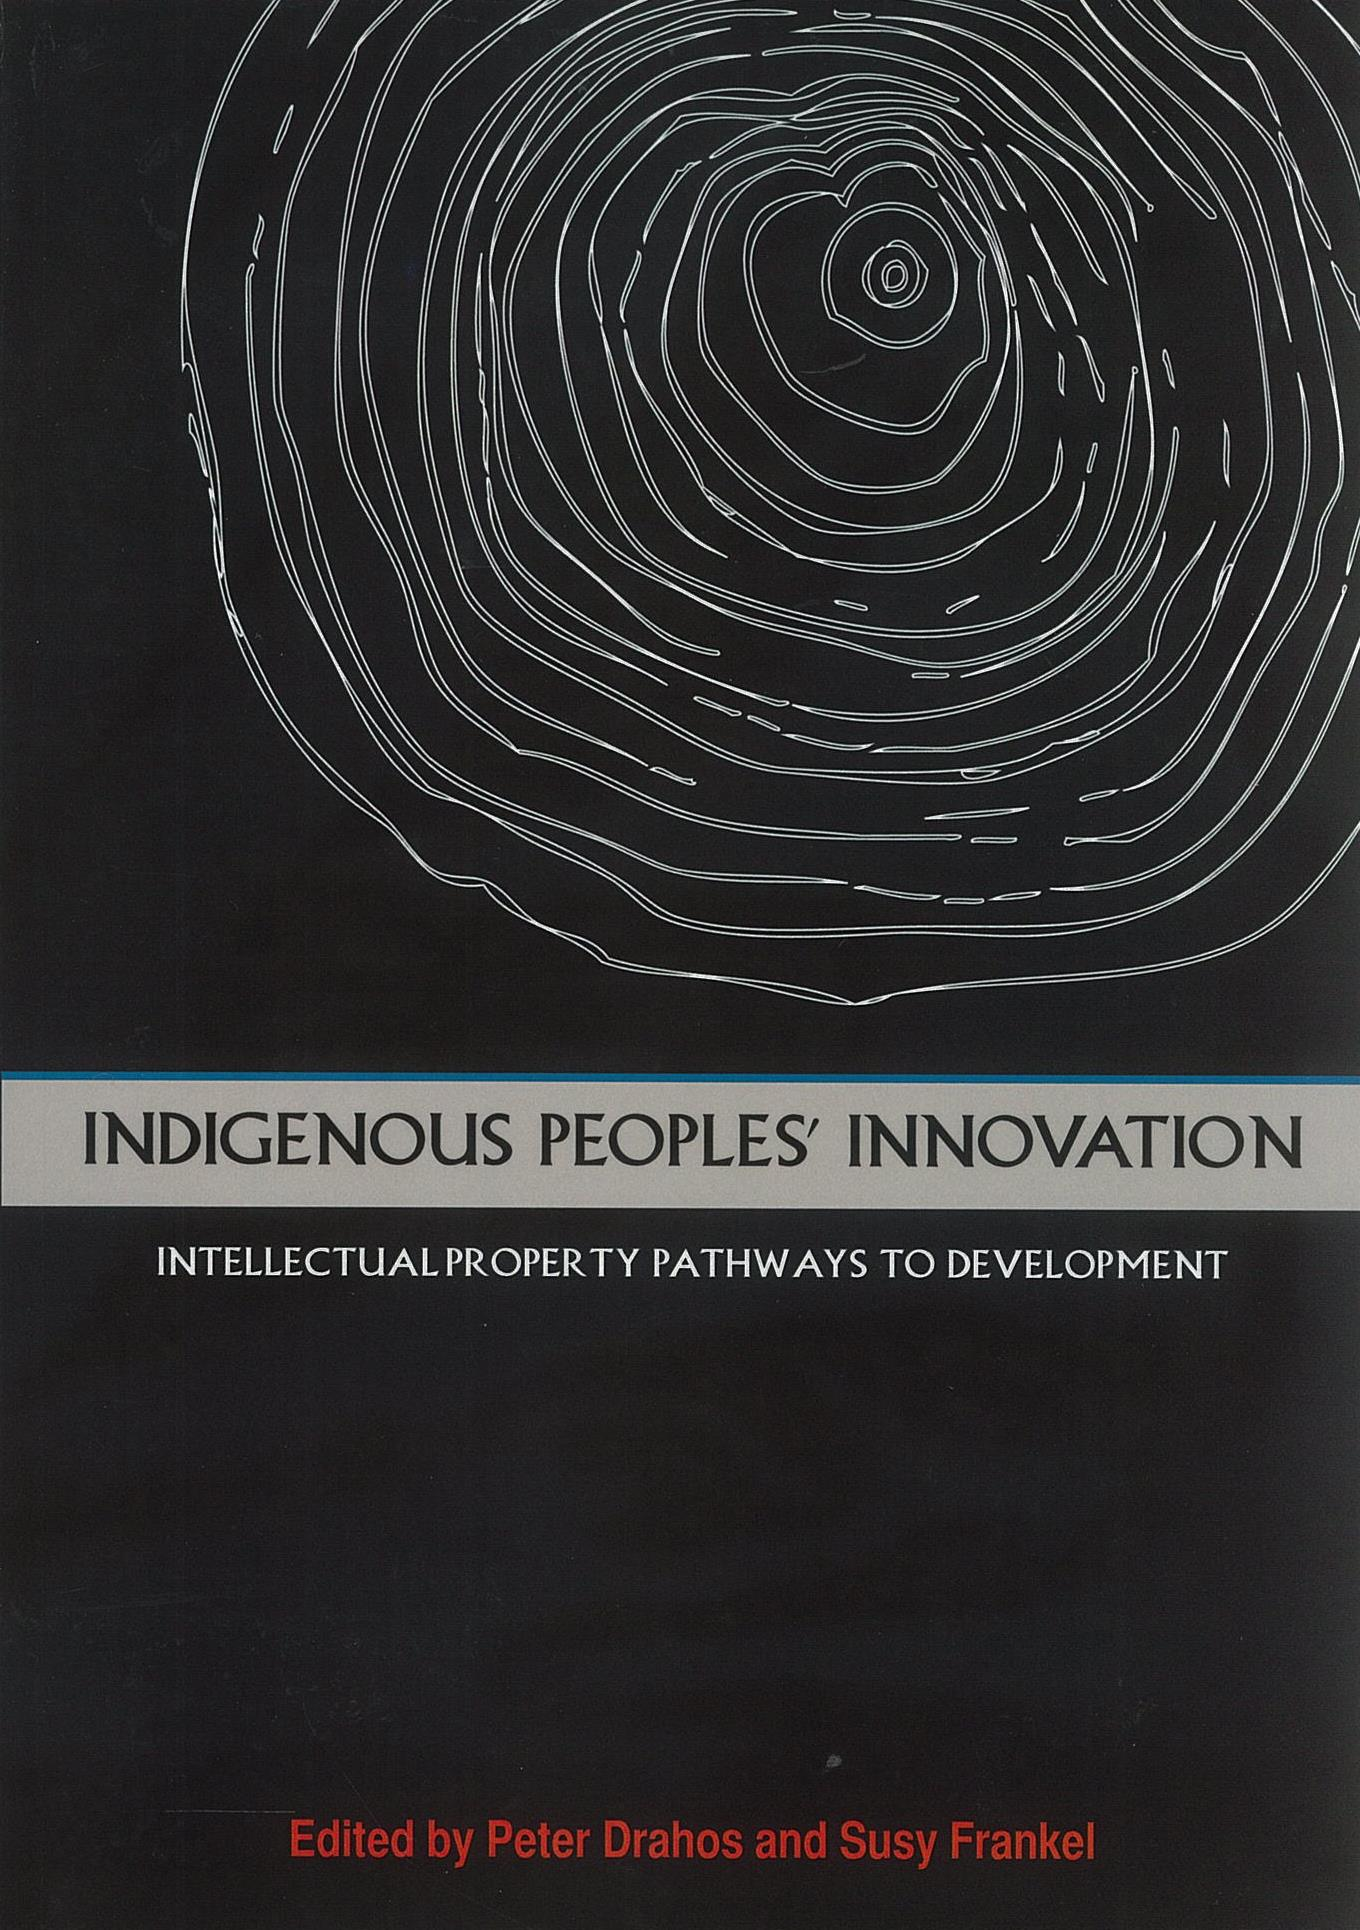 indigenous-peoples-innovation